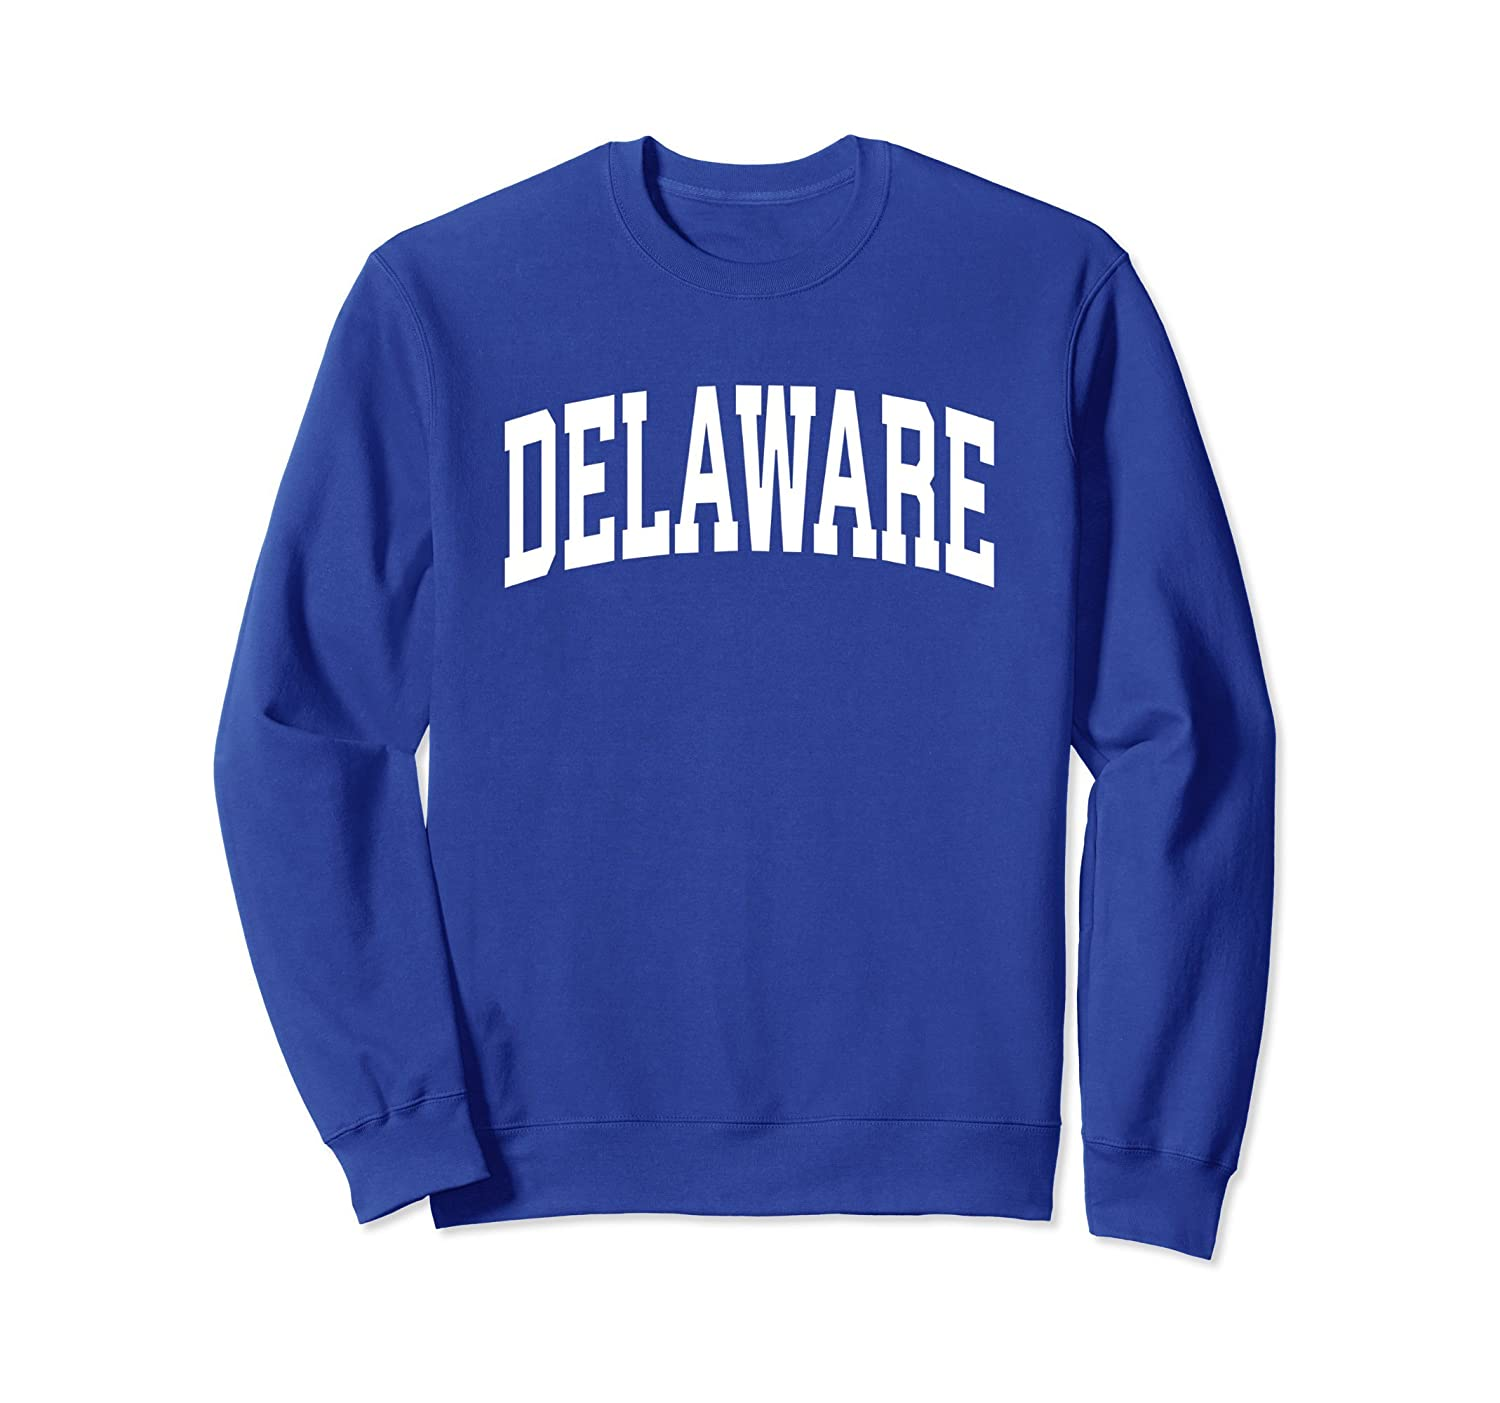 Delaware Crewneck Sweatshirt Sports College Style State Gift-alottee gift